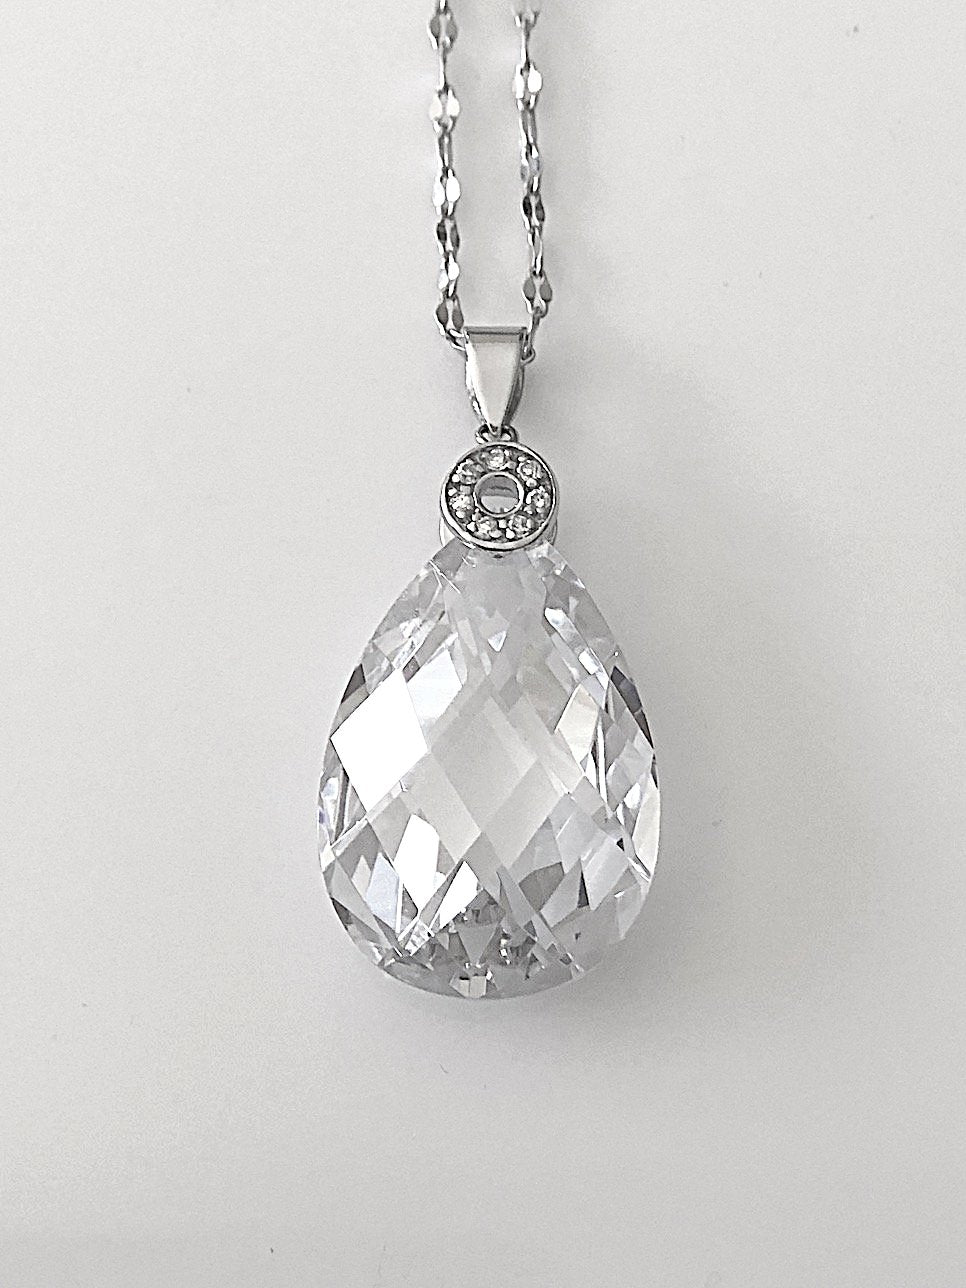 Faceted Teardrop Crystal Pendant in Sterling Silver